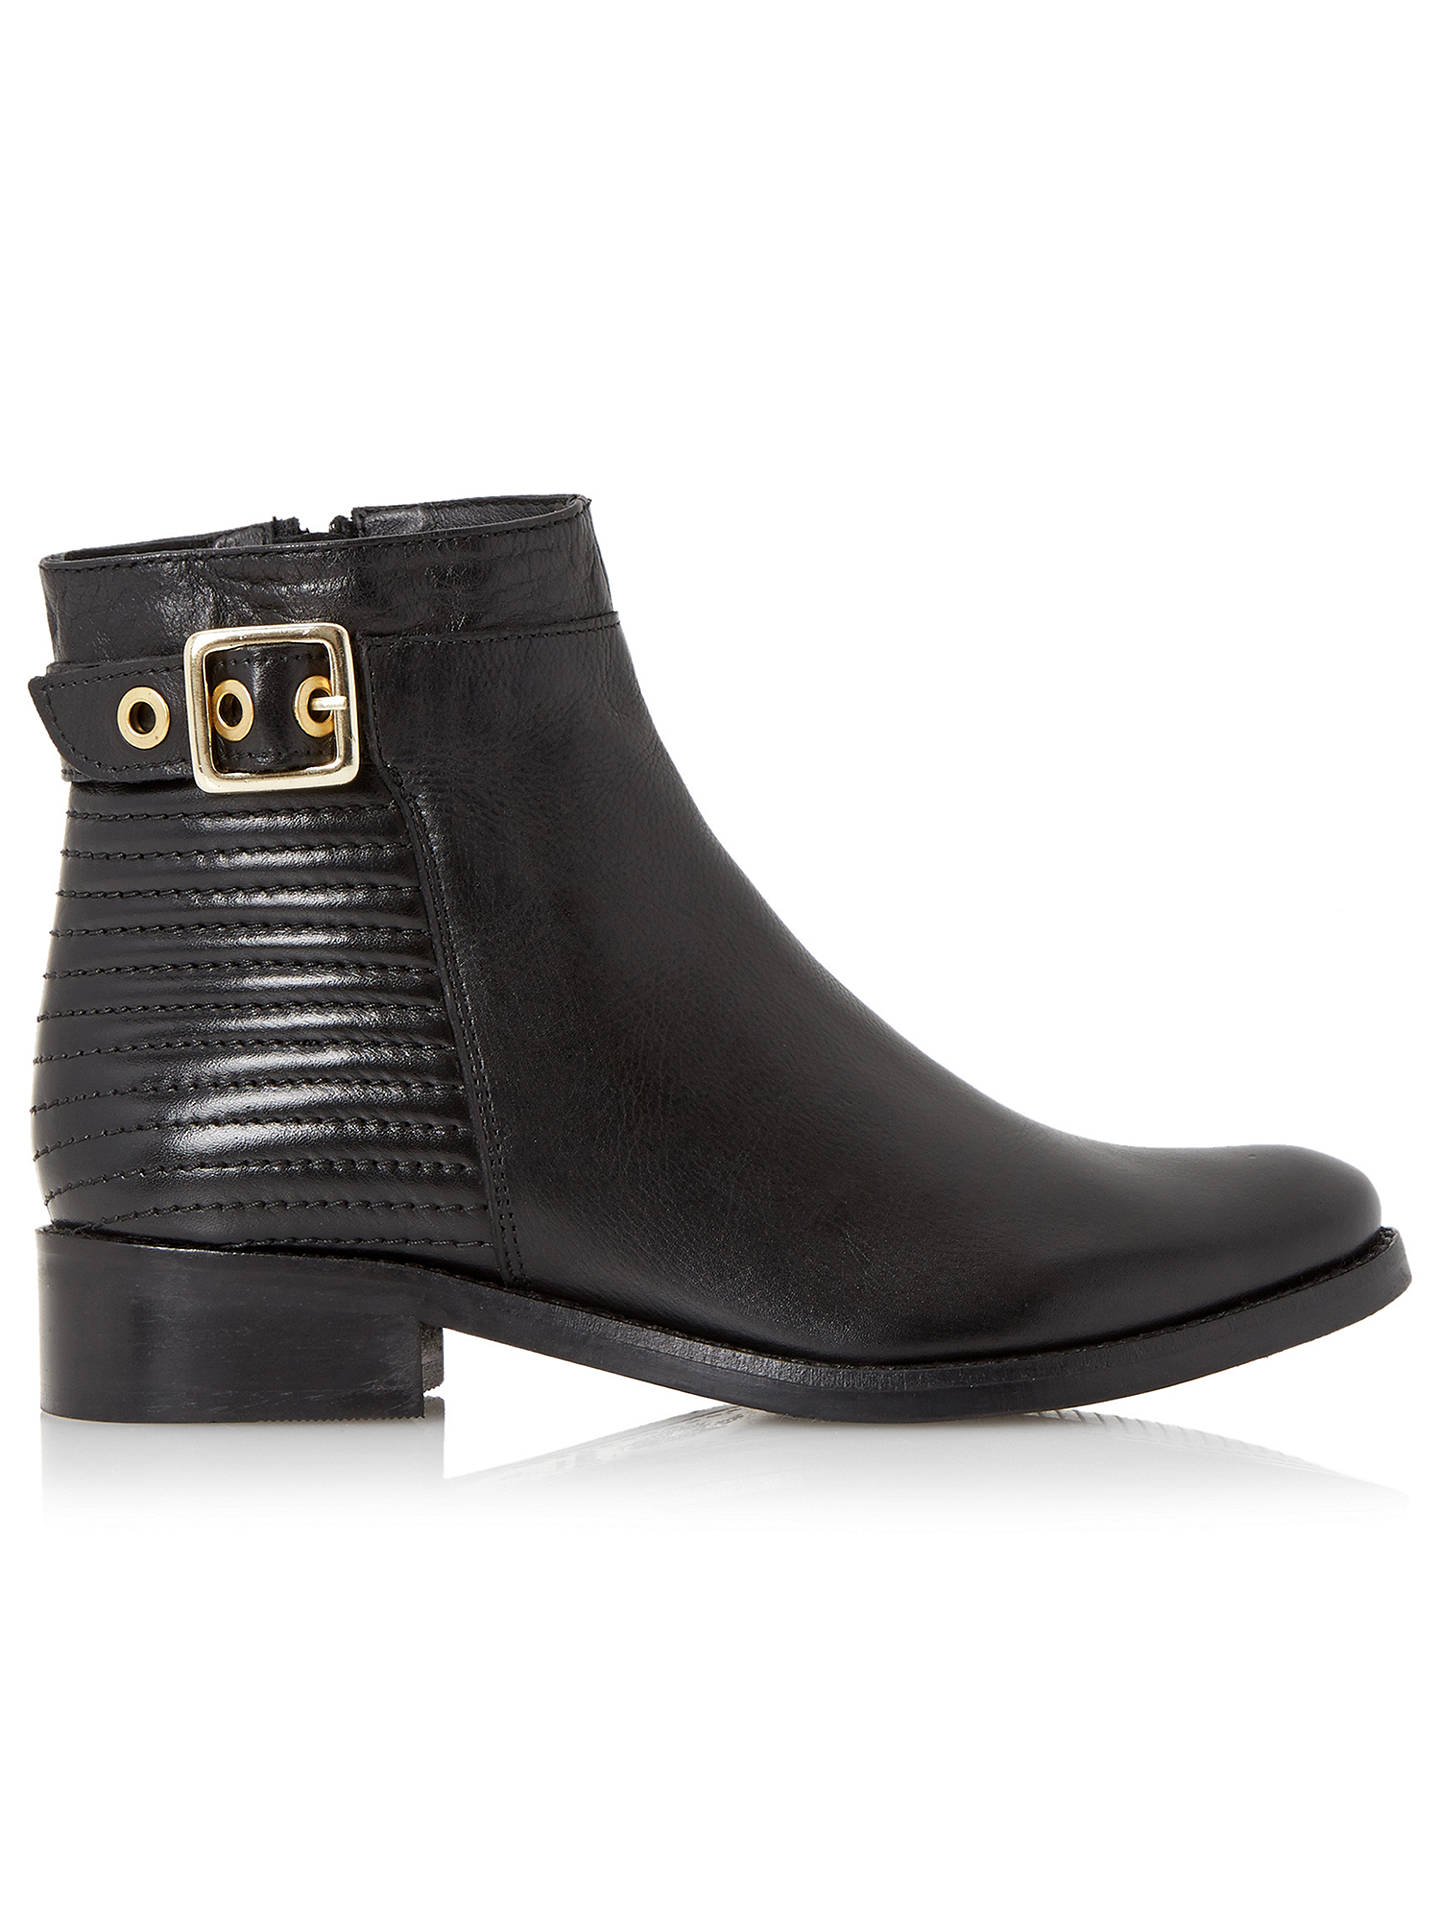 cefbcd302e4 Dune Padston Leather Buckle Trim Ankle Boot, Black at John Lewis ...